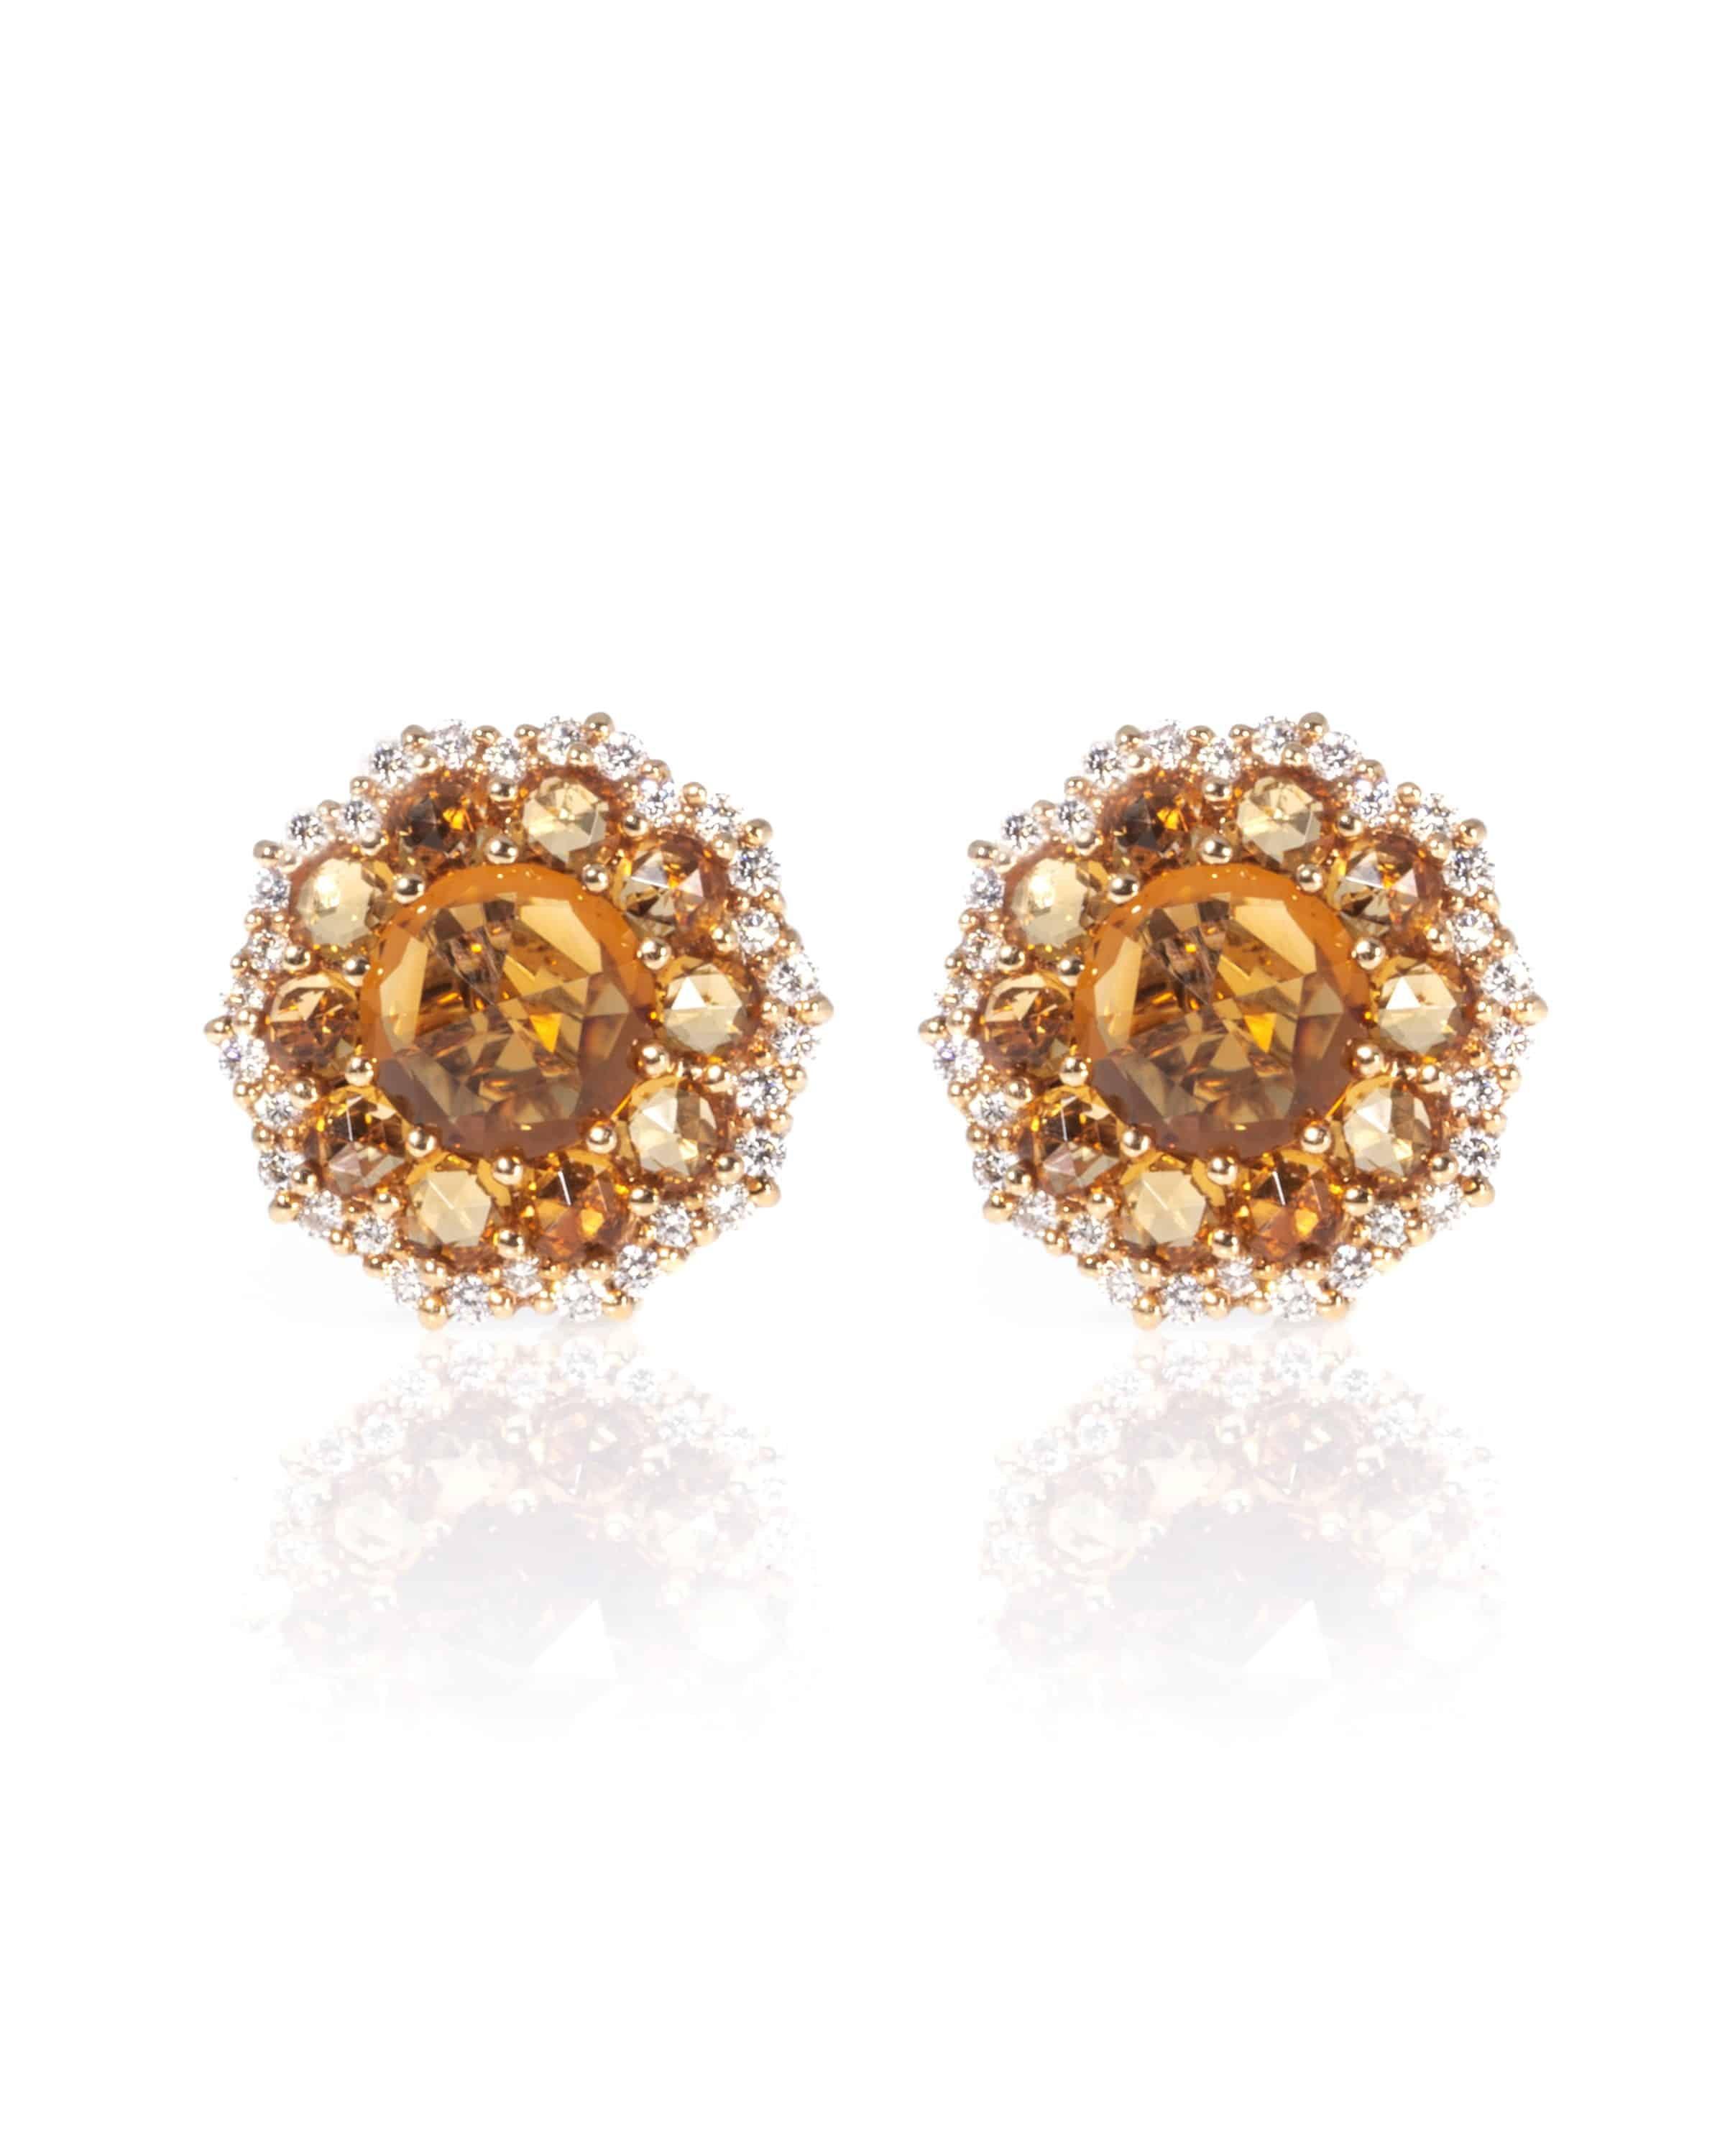 Crivelli 18k White Gold And 18k Rose Gold Diamond And Citrine Earrings 289-VE9599-99431407